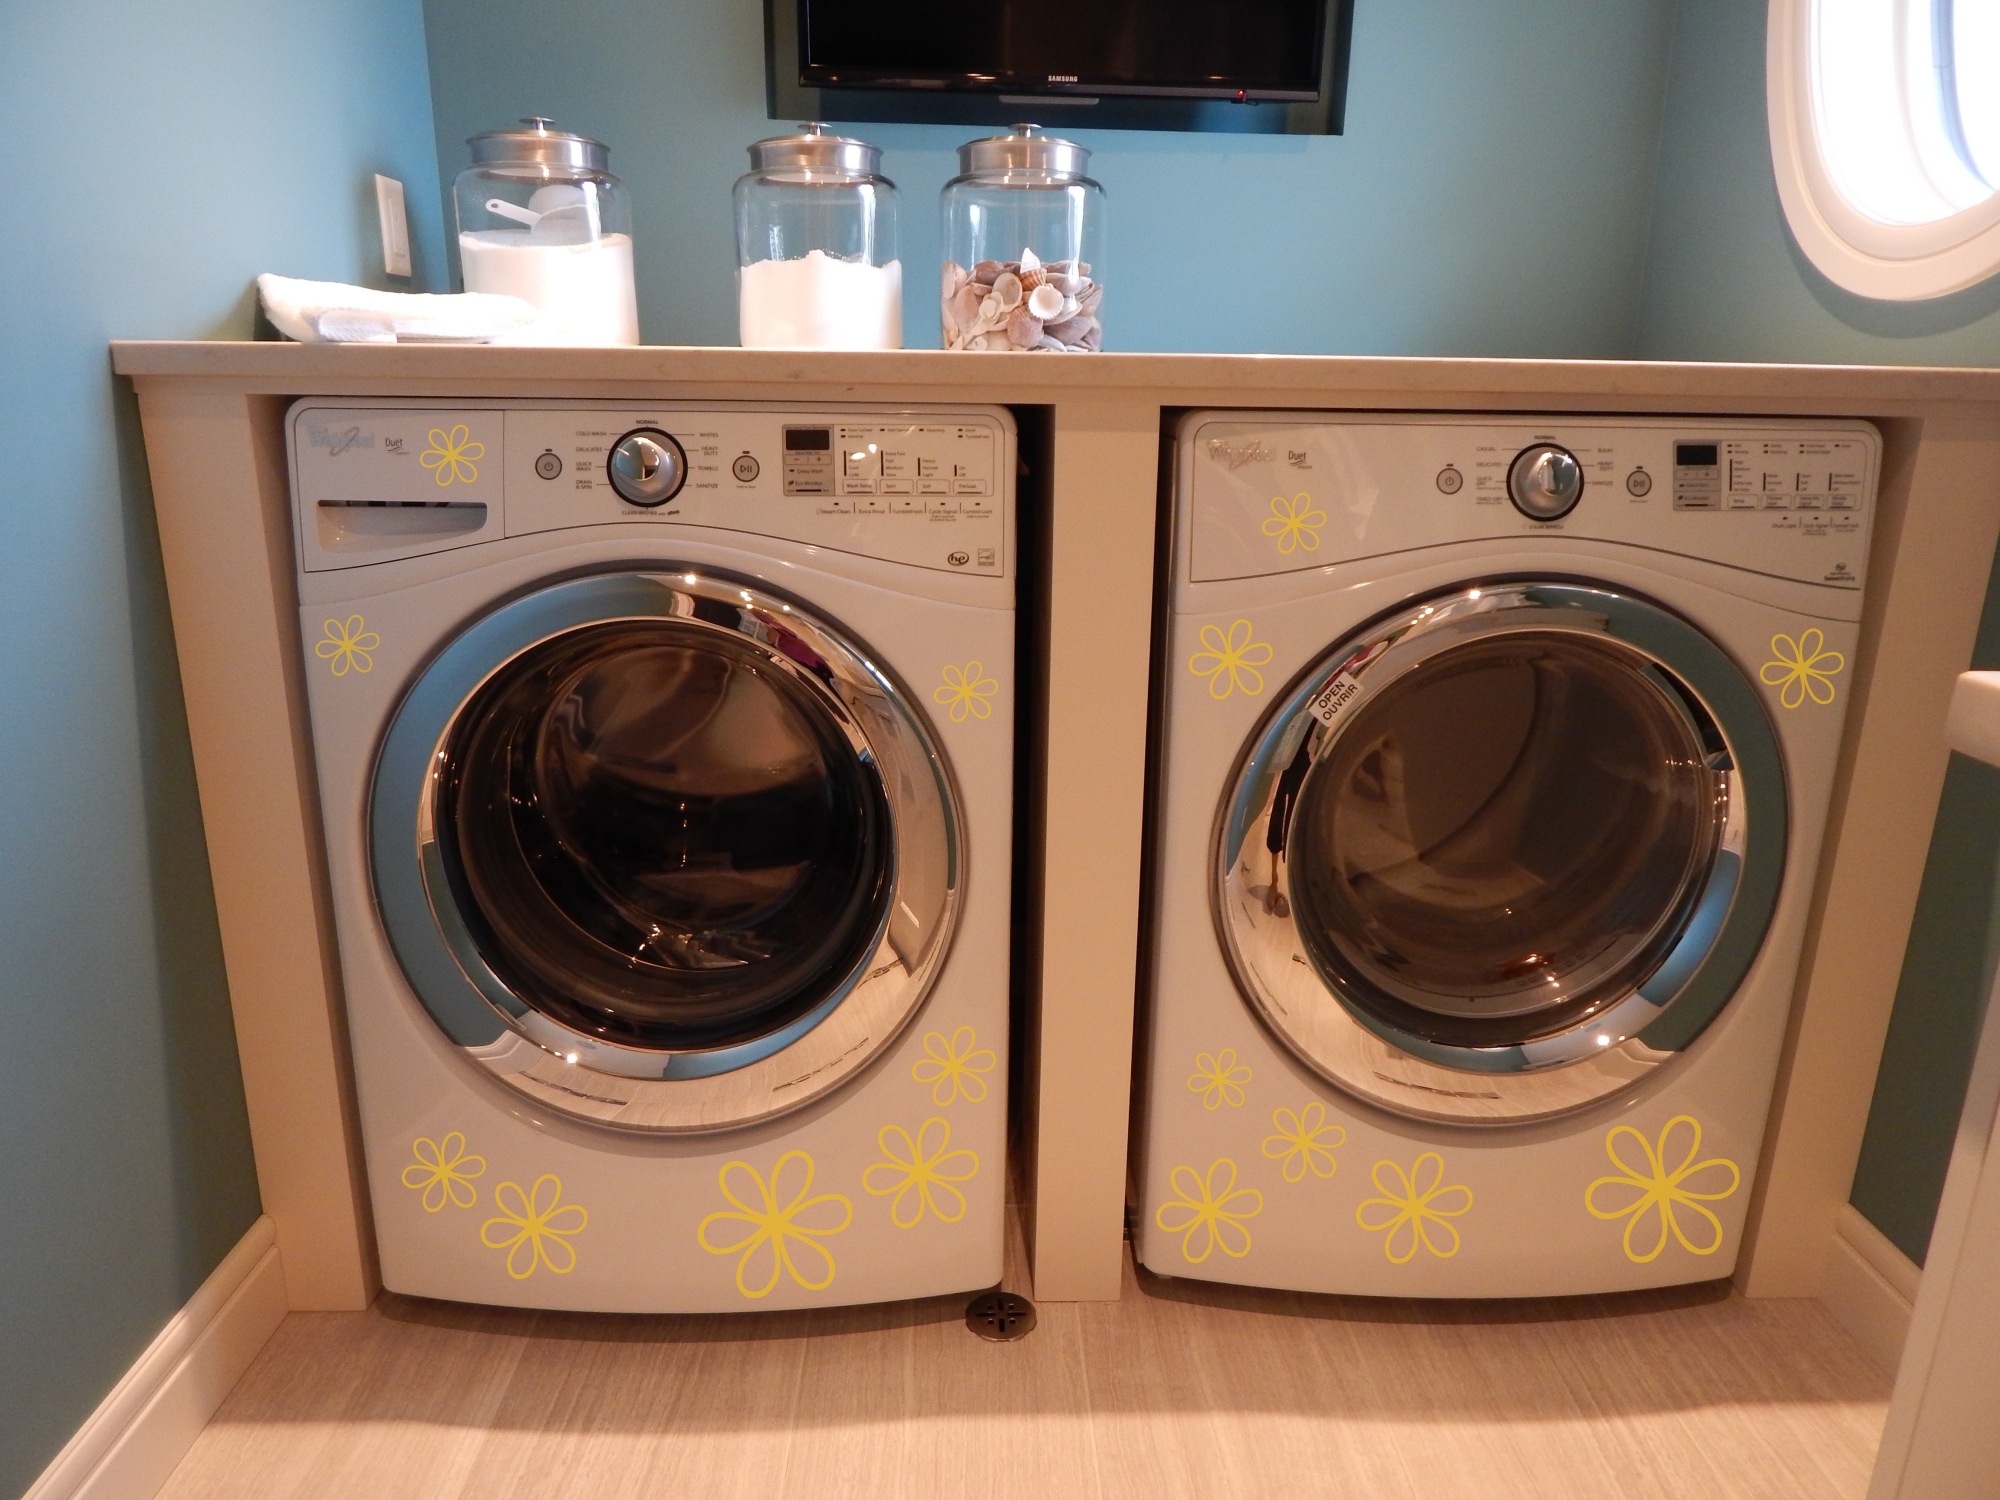 Daisy Flower 2 color package jazzes up this Washer and Dryer set and adds a cheerful attitude to this Laundry room.